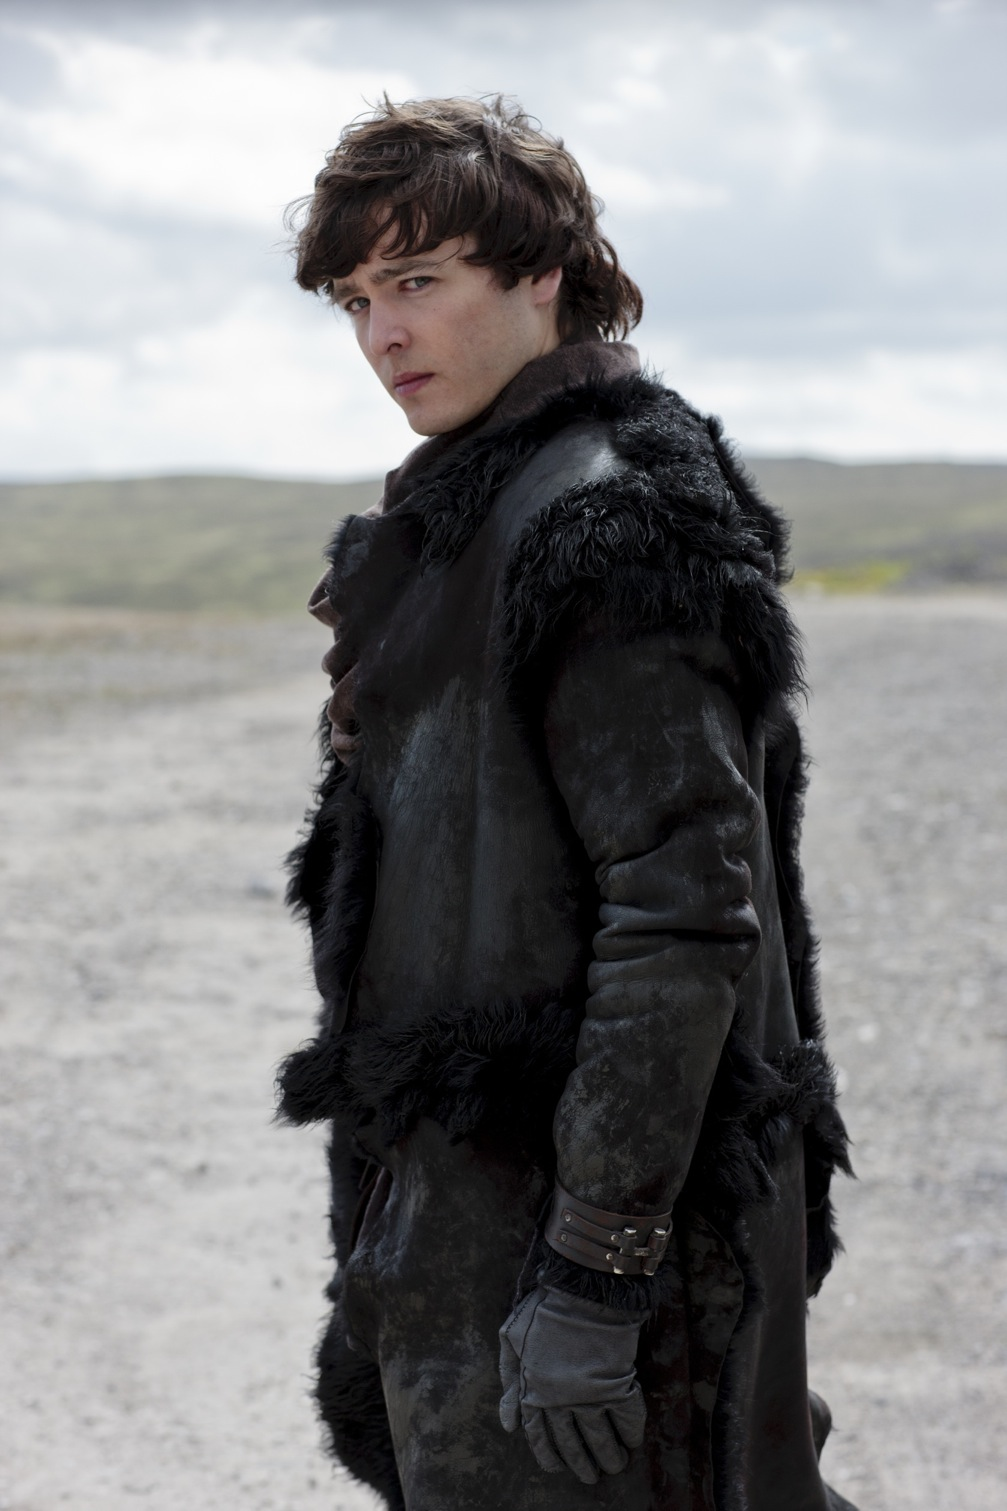 Mordred Second Part To Merlin Premiere Airs Tonight On SyFy